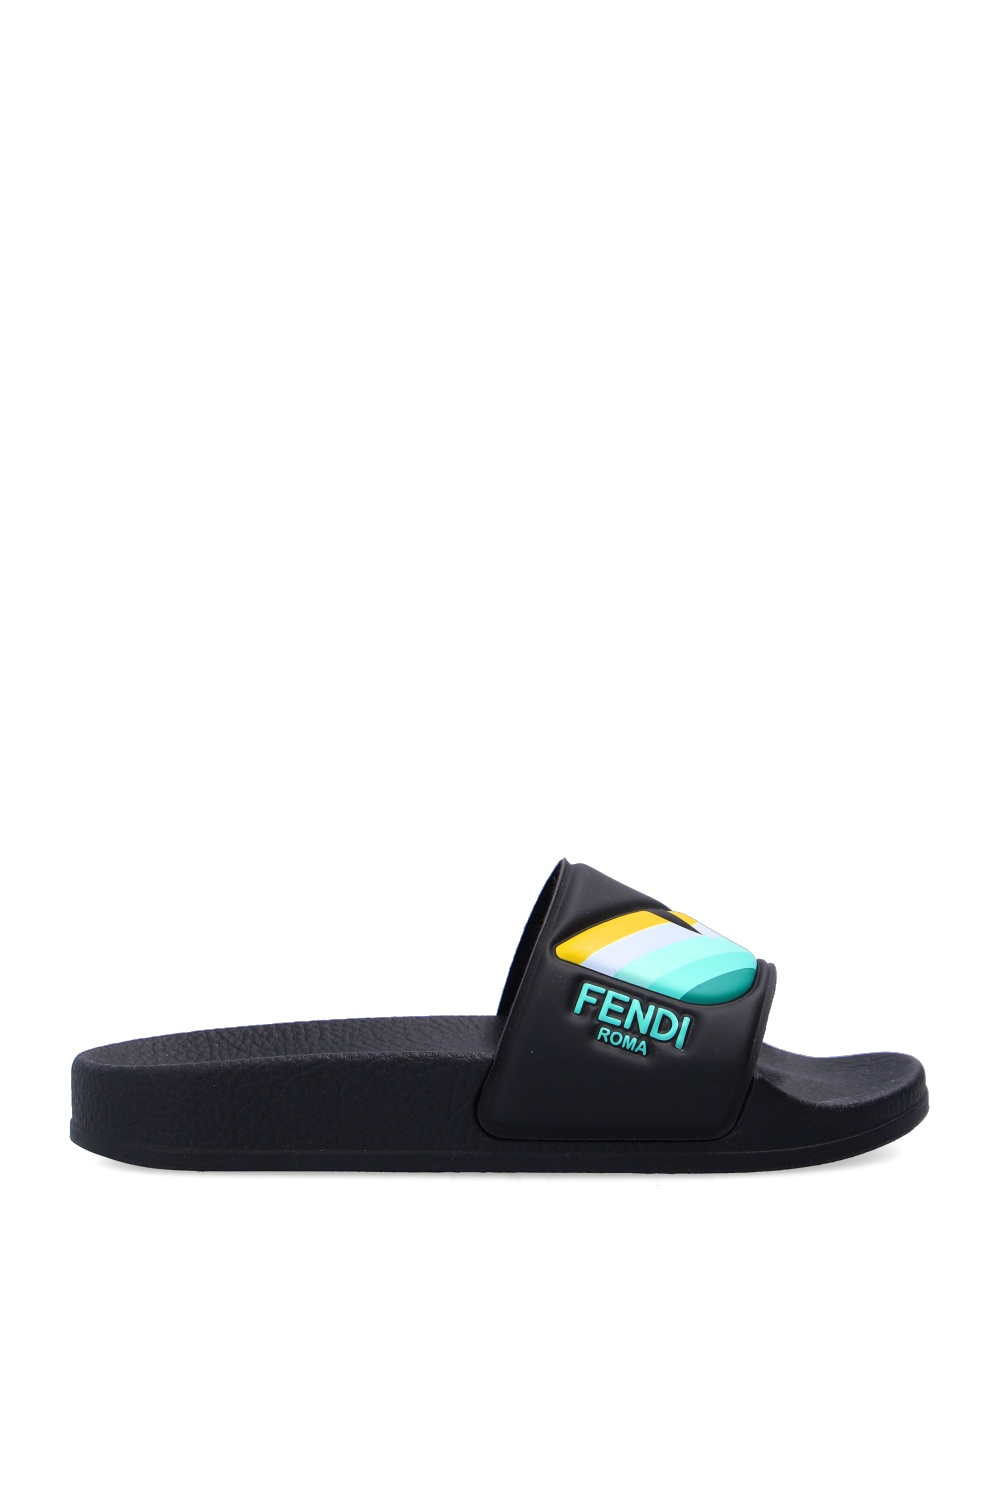 Fendi Kids Rubber slides with logo